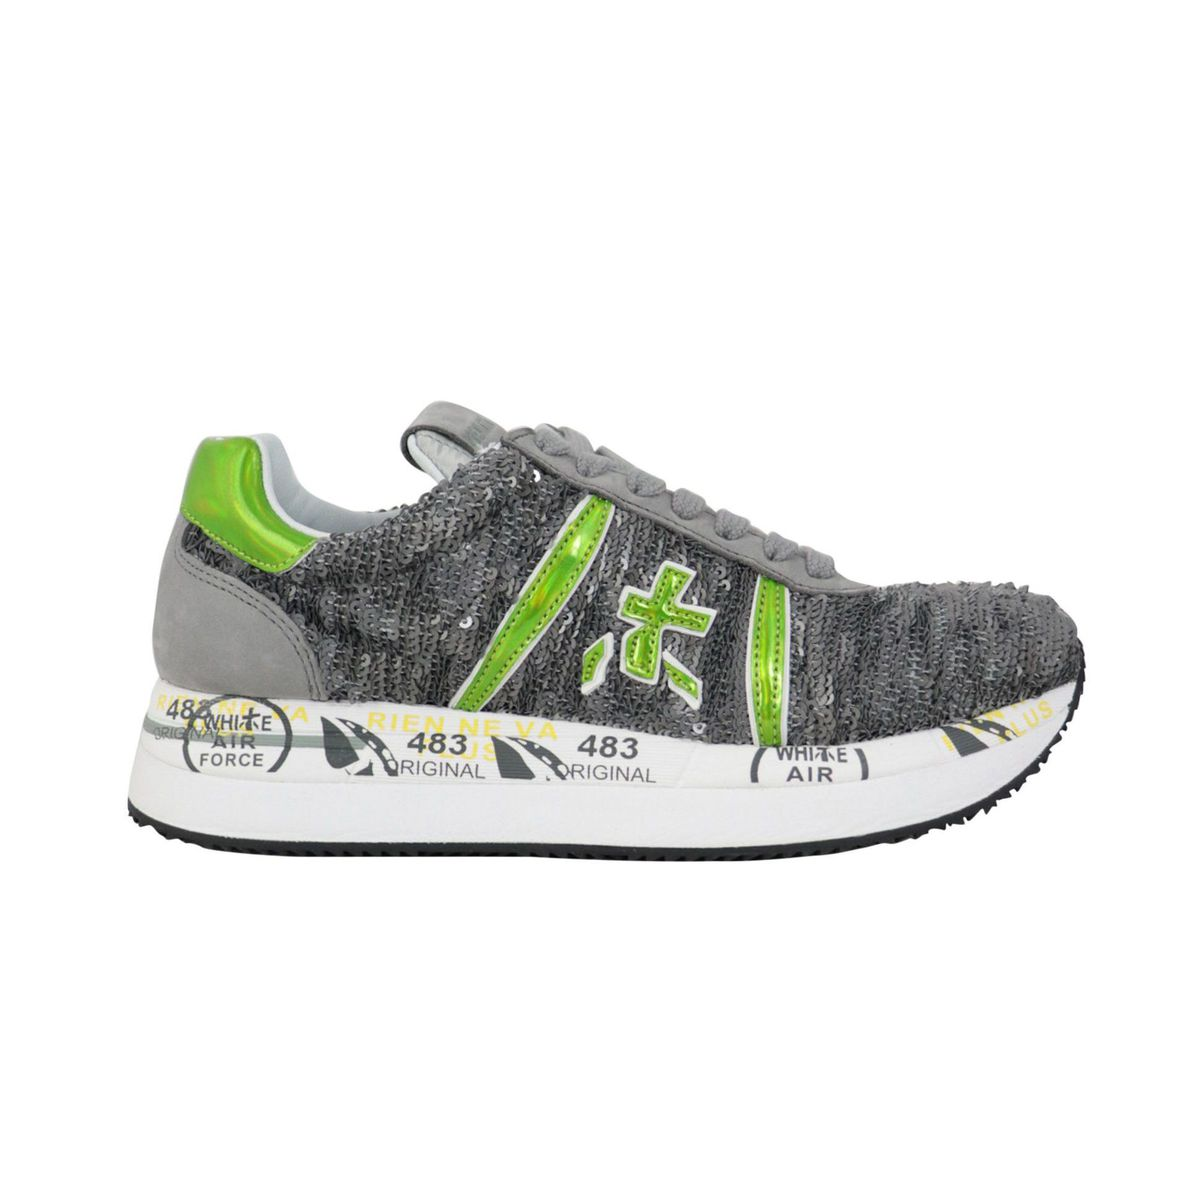 Conny sneakers in glitter leather with prints Grey green Premiata